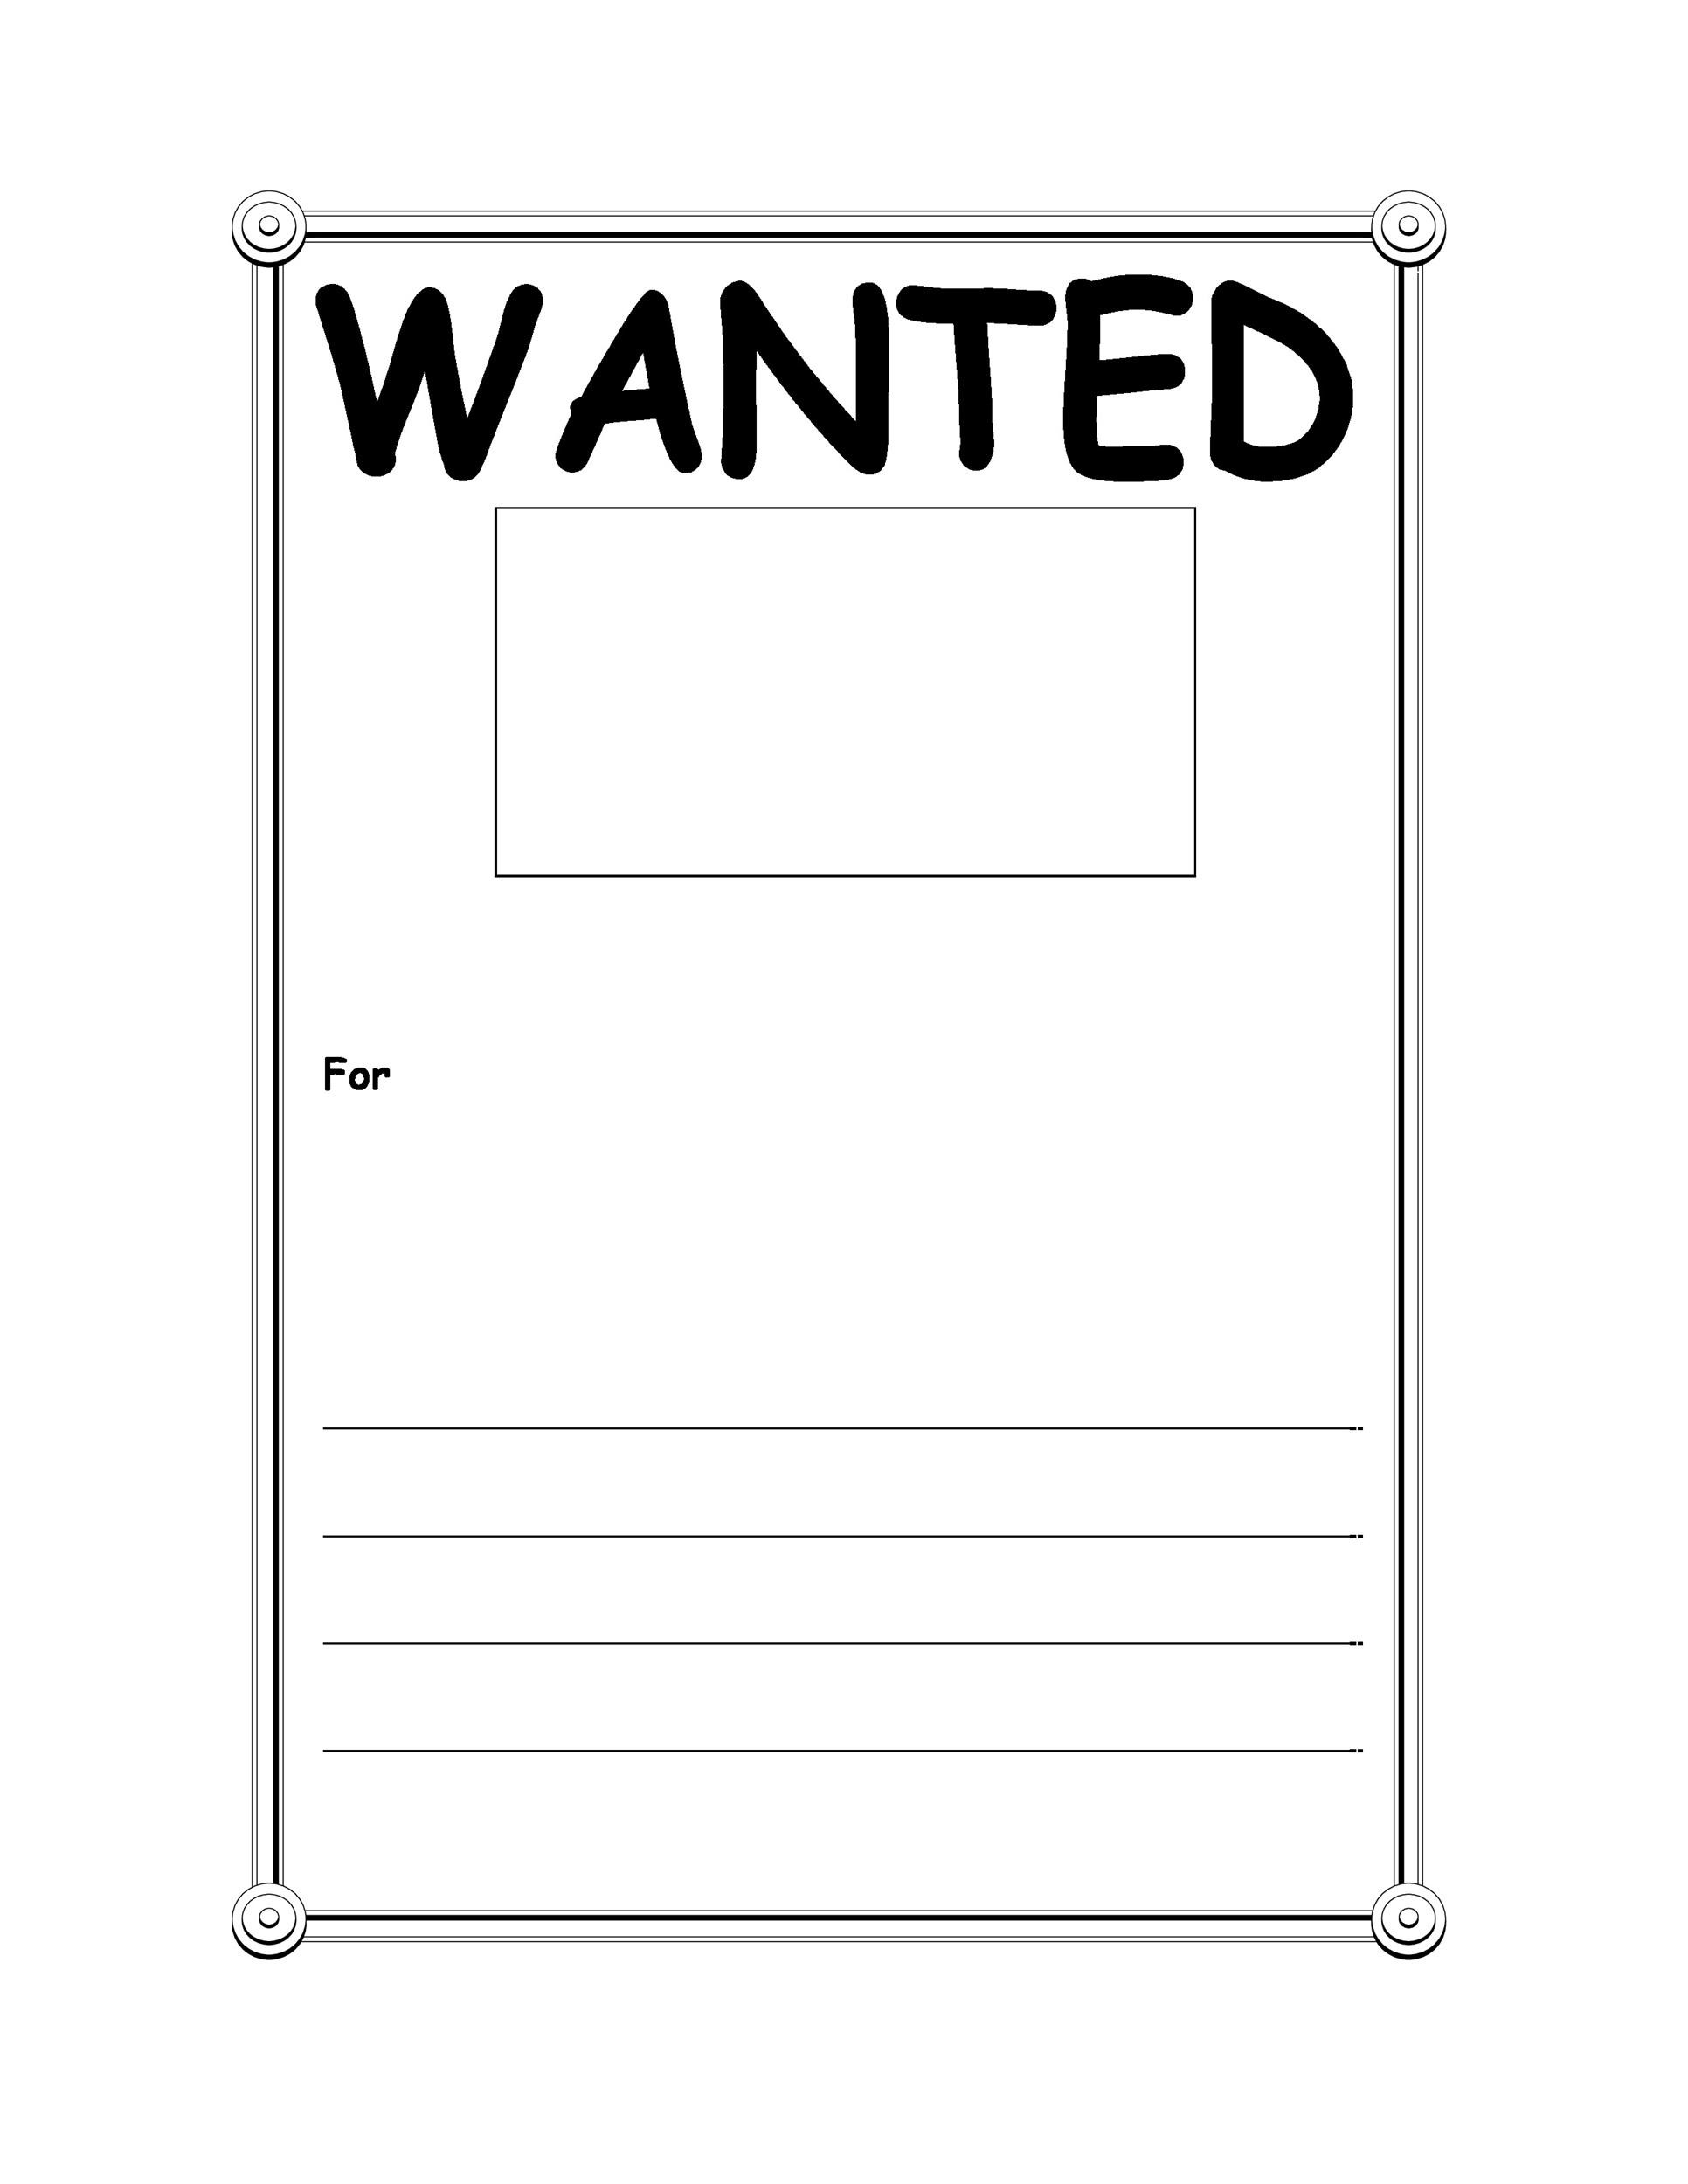 Reward Posters Template wanted poster book report projects – Printable Wanted Poster Template